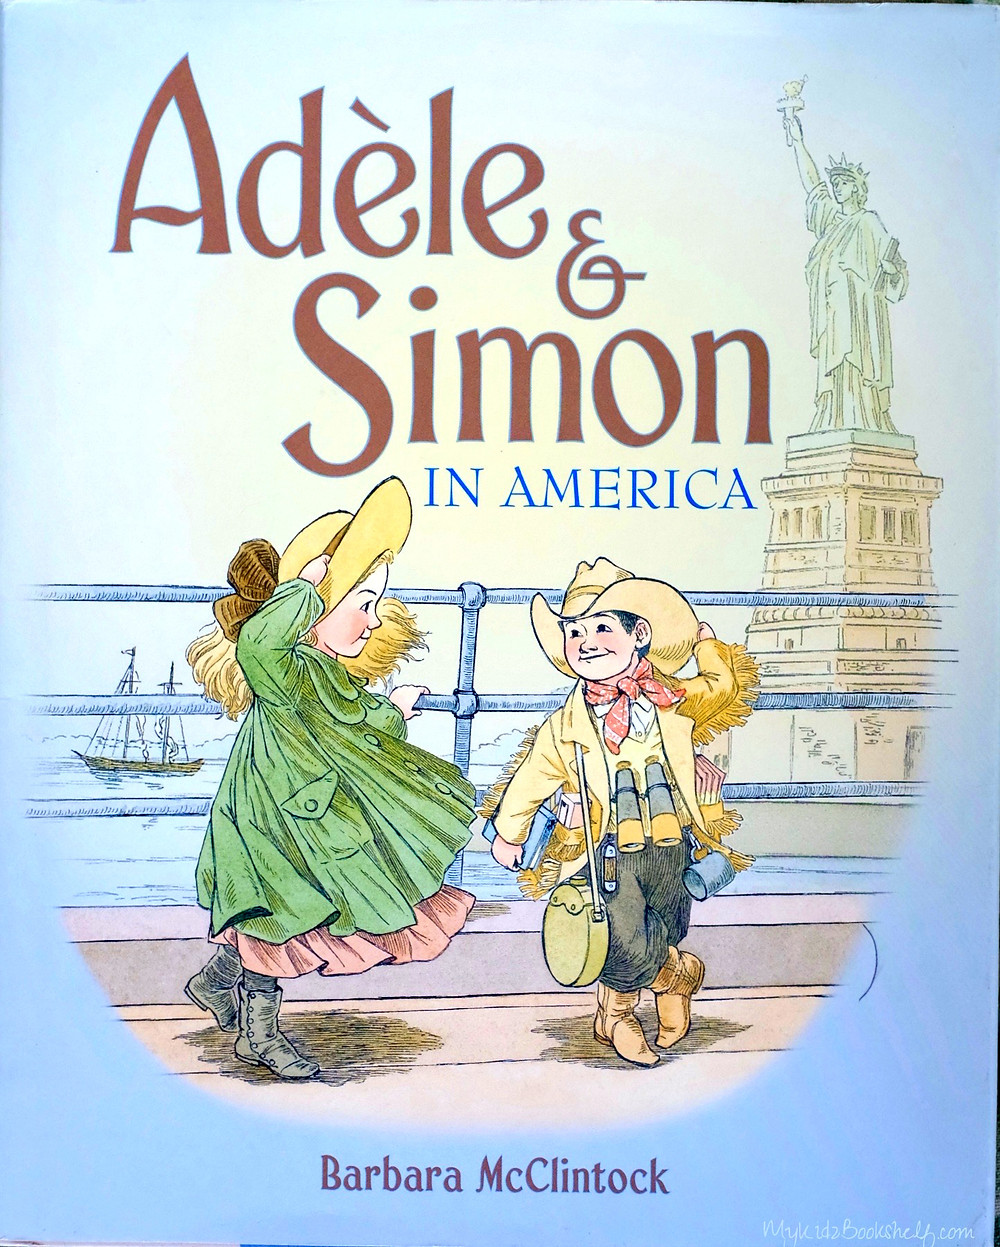 Adele and Simon in America picture book for kids